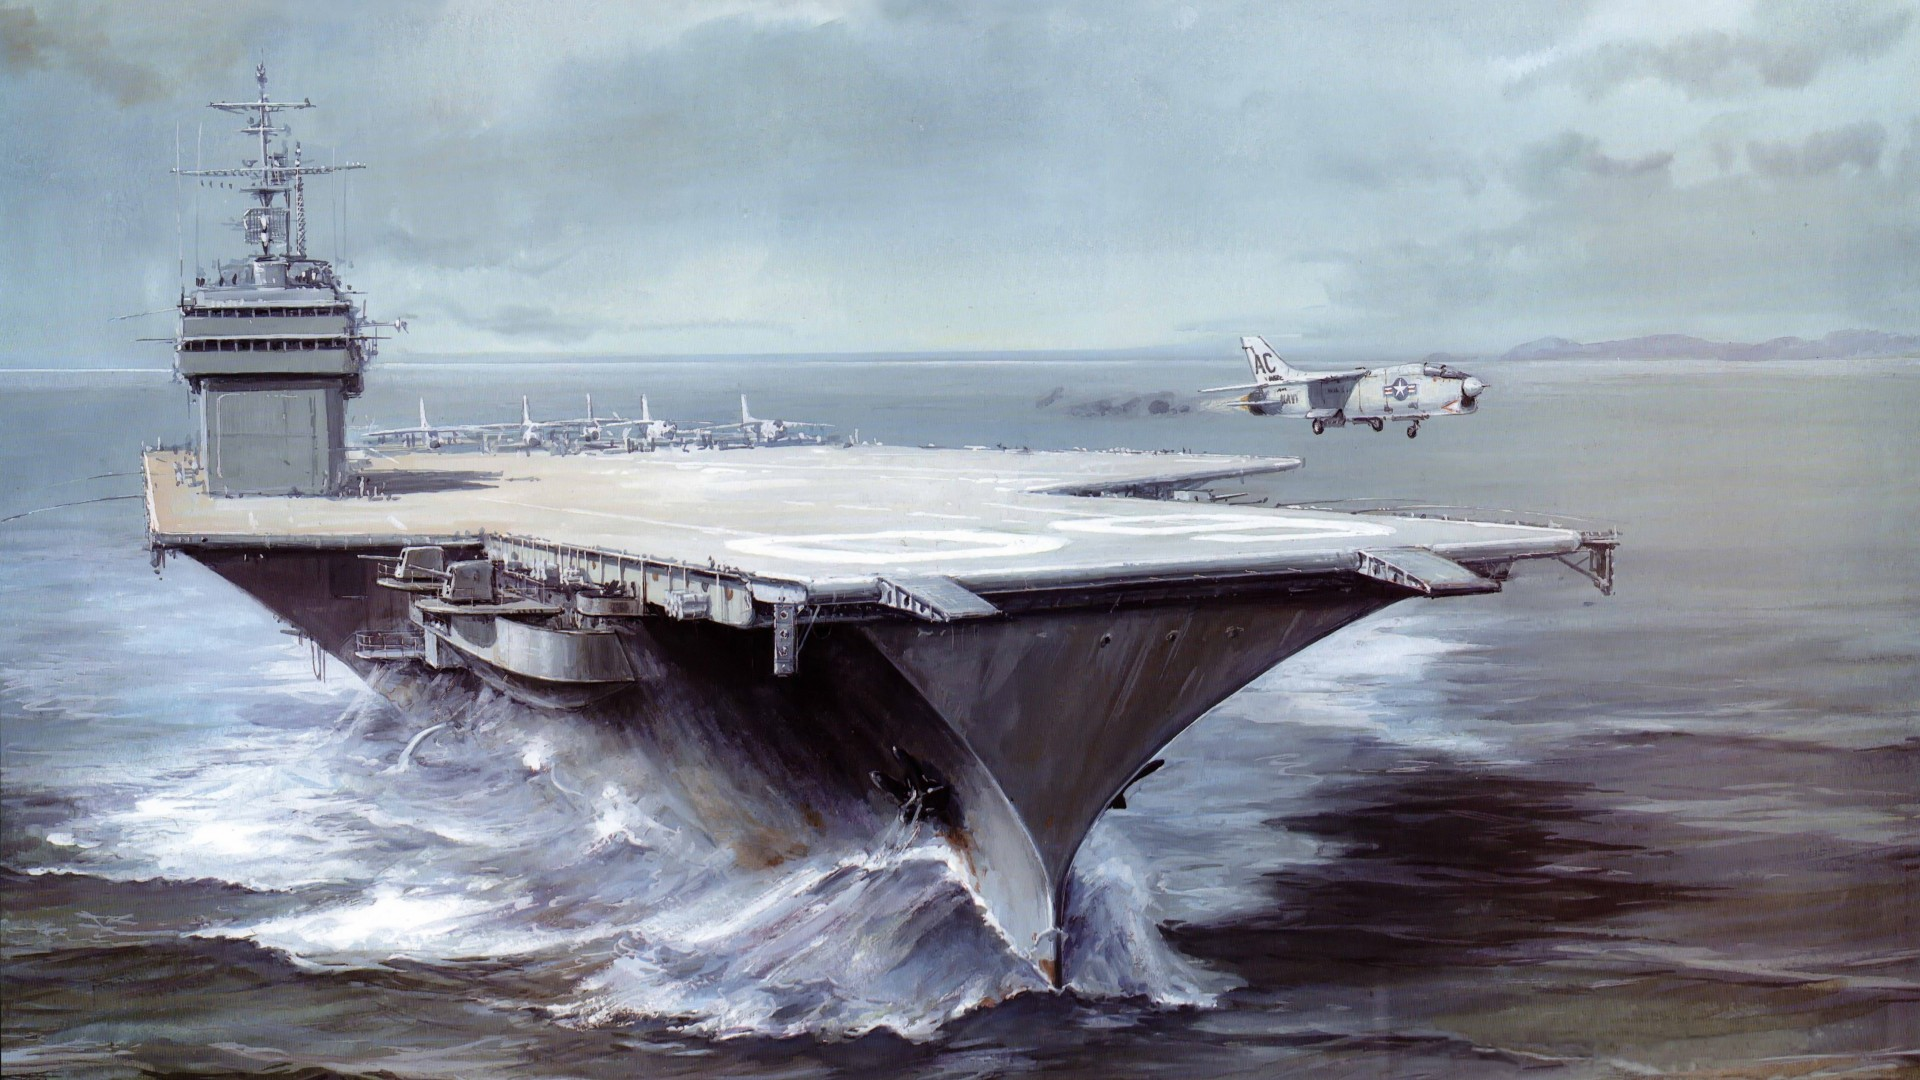 sr 71 drone with Uss Saratoga Cva 60 Cvb 60 Carrier Forrestal Class Aircraft 1798 on o Funcionam Os Avioes Invisiveis additionally Lockheed sr71 images additionally Ye8Xb also Chinese Hypersonic Engine Wins Award besides 15 Fascinating Facts About The Sr 71 Blackbird The Fastest Plane On Earth.